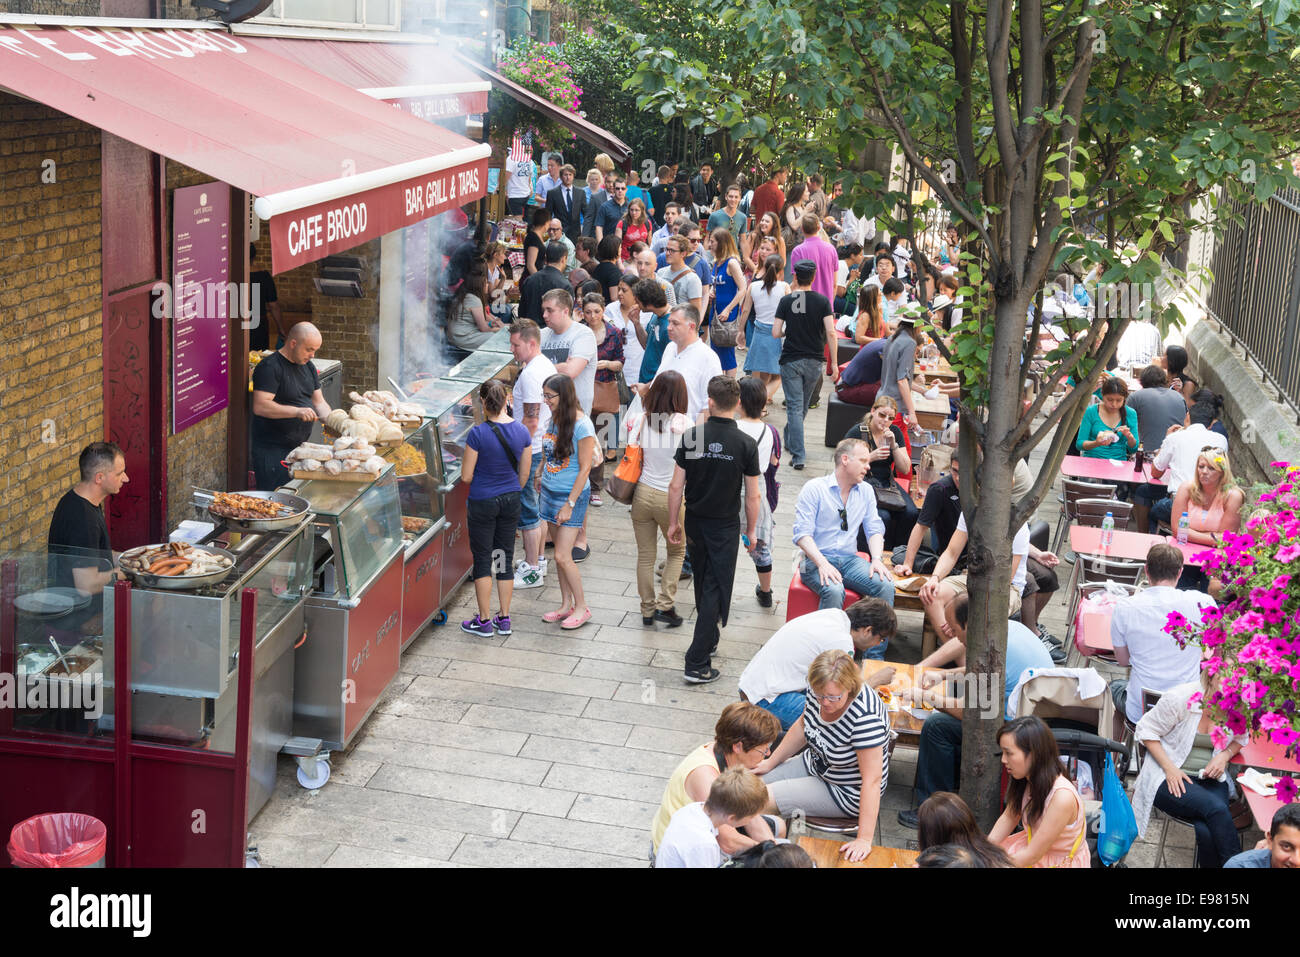 Food stalls at Borough Market, London, England, UK - Stock Image